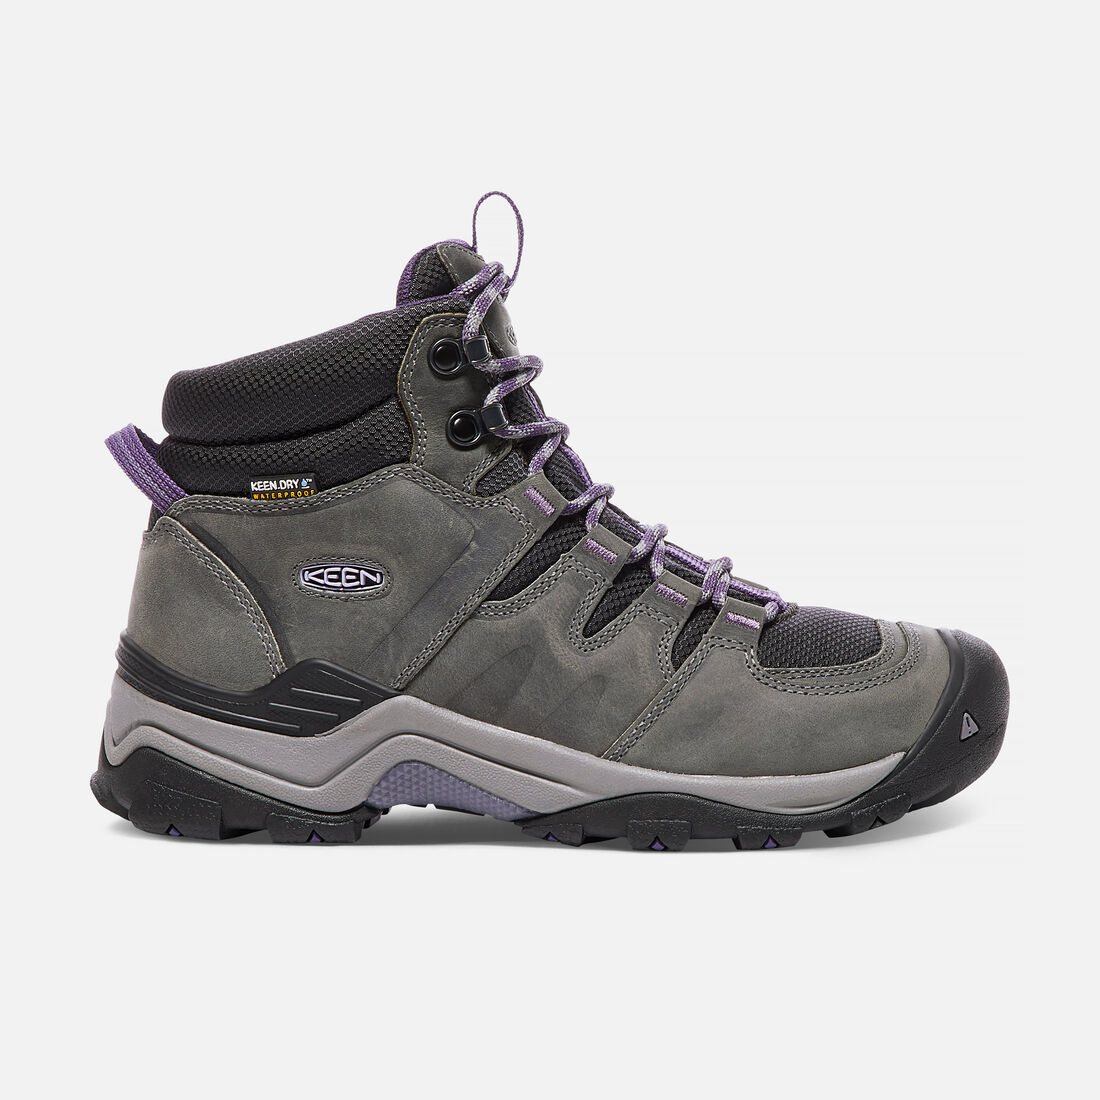 83856aaa155 Women's Gypsum II Waterproof Mid | KEEN Footwear